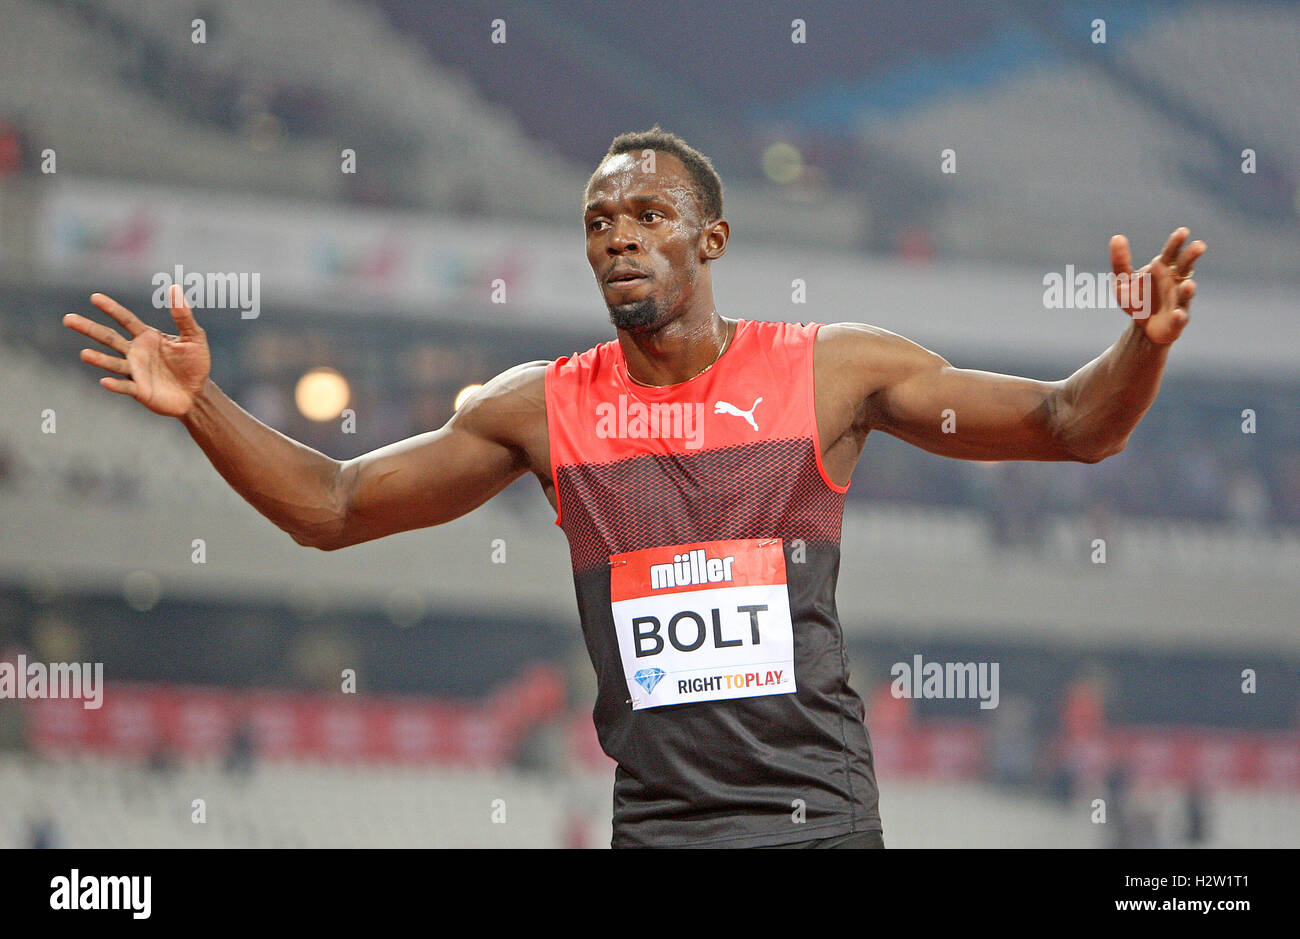 Muller anniversary games at the olympic stadium in london stock